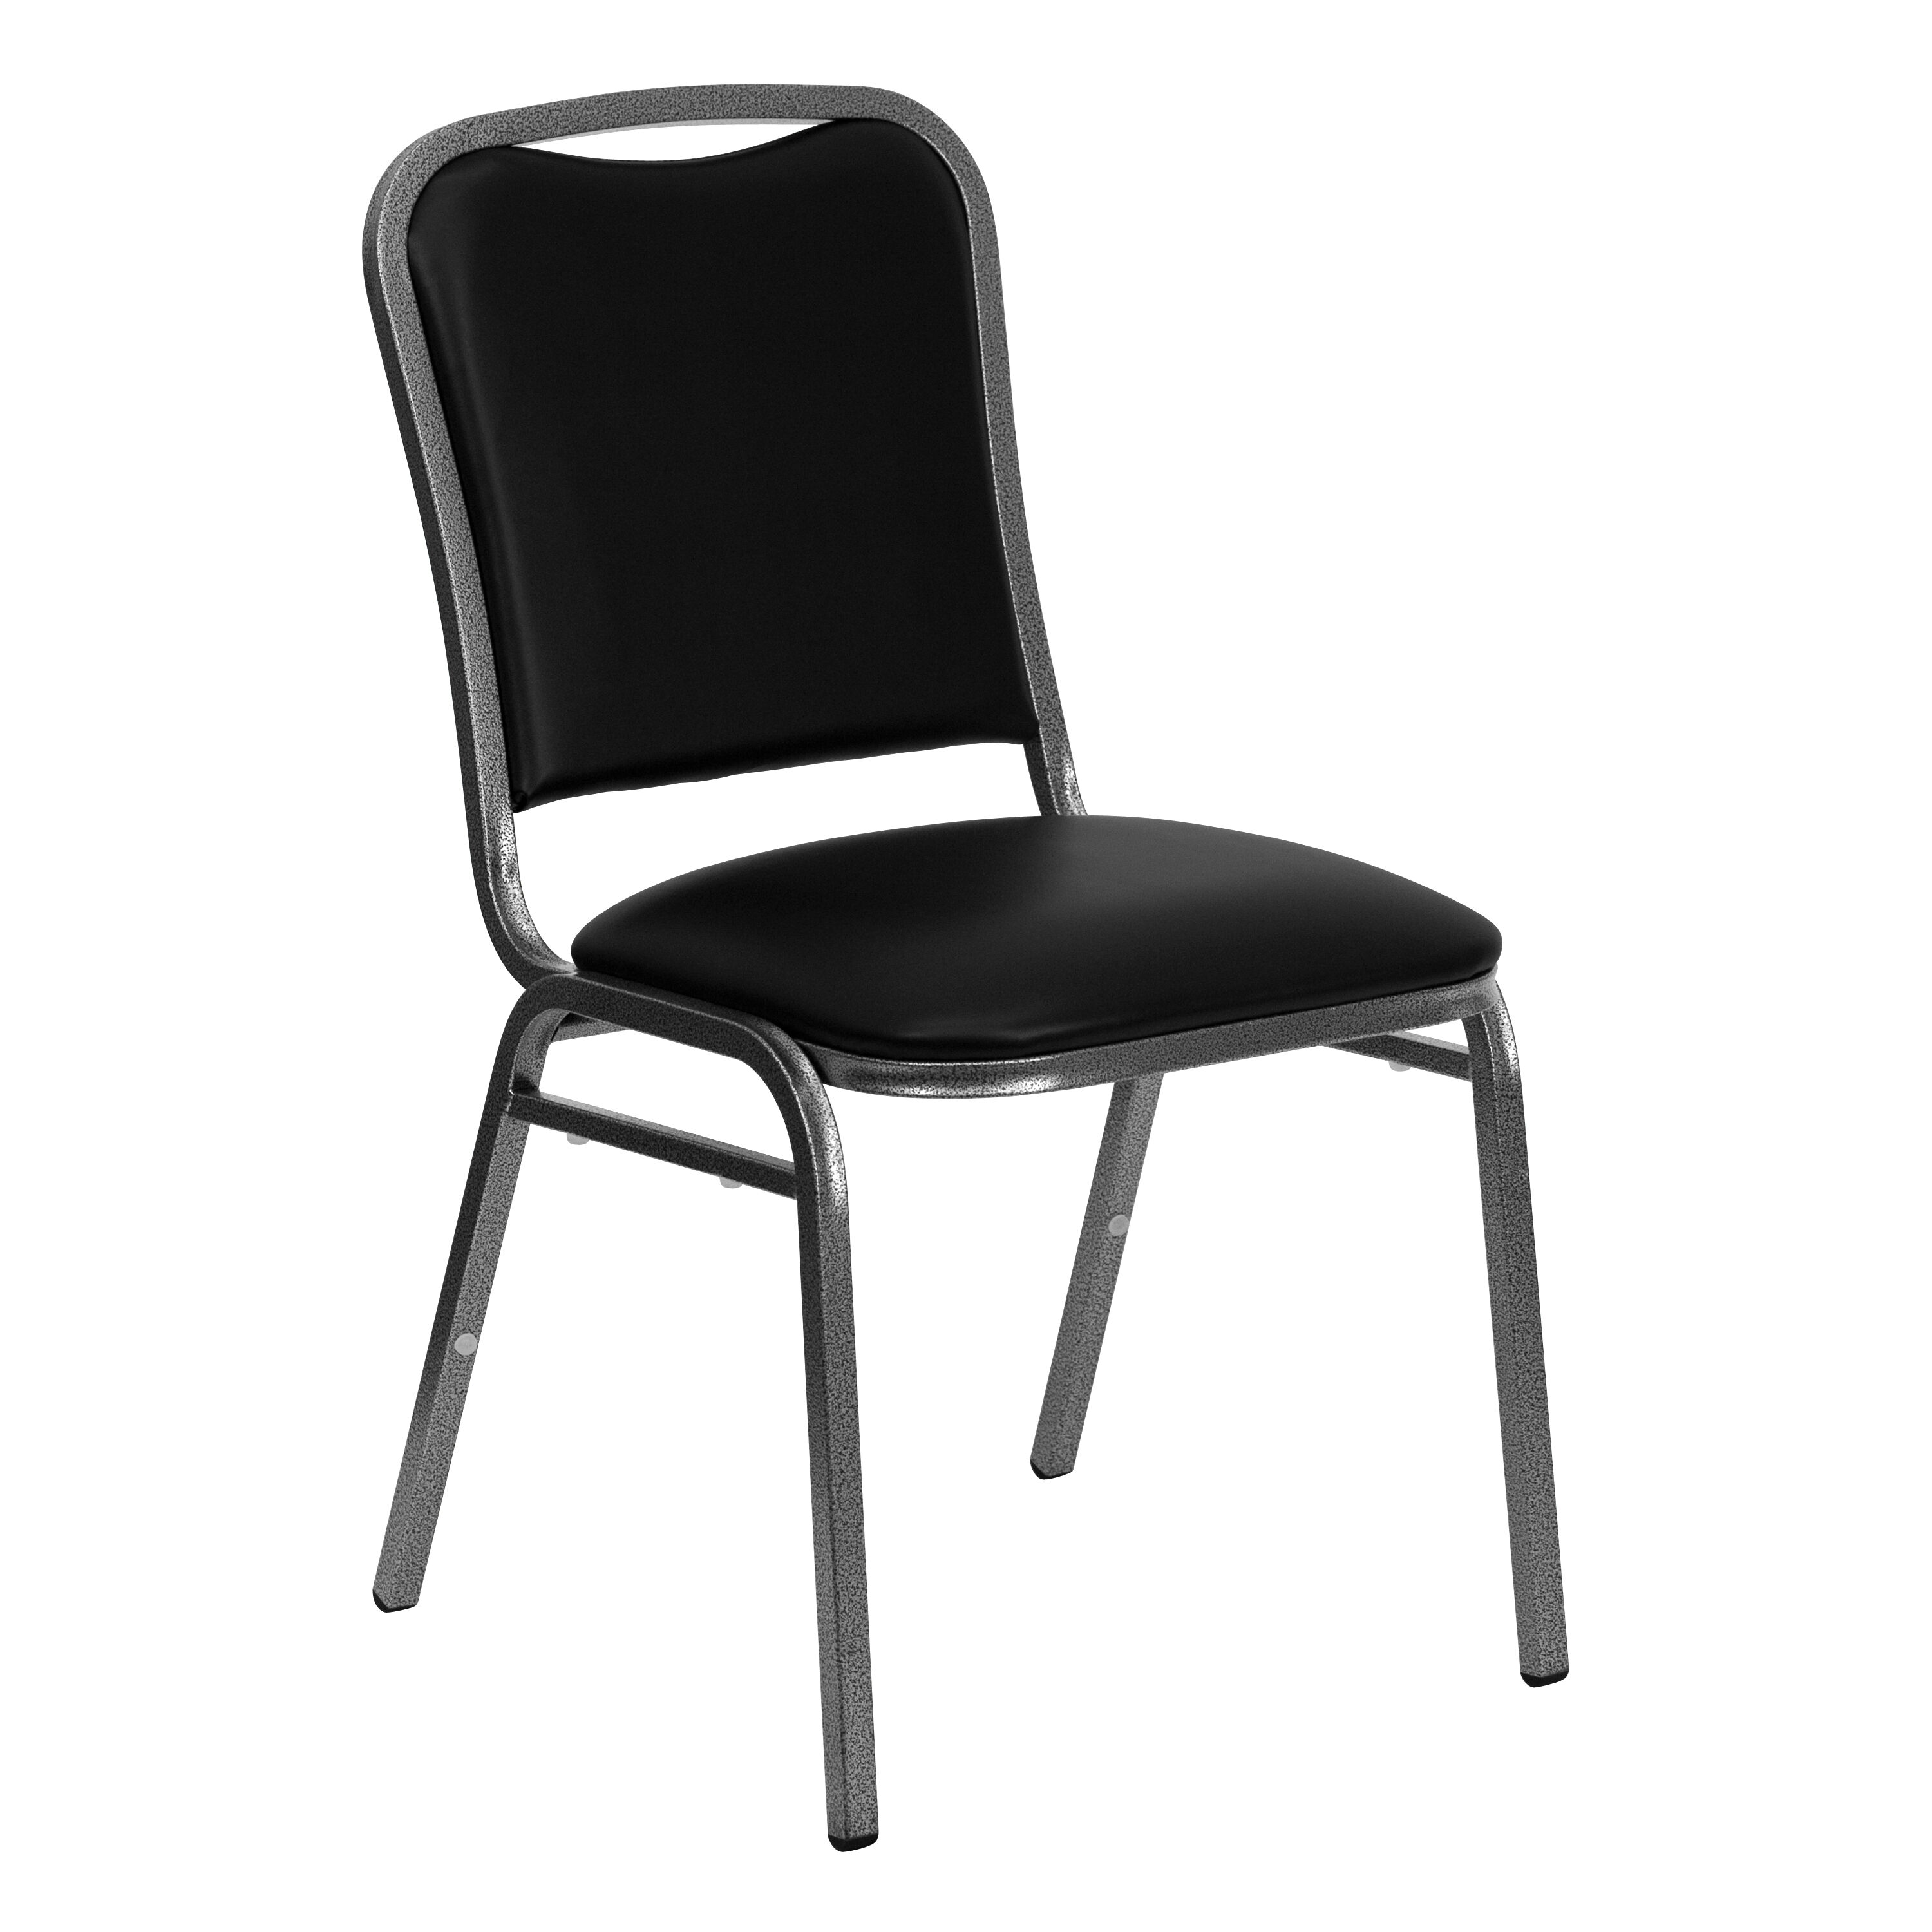 Flash Furniture HERCULES Series Stacking Banquet Chair In Black Vinyl    Silver Vein Frame NG 108 SV BK VYL GG | StackChairs4Less.com